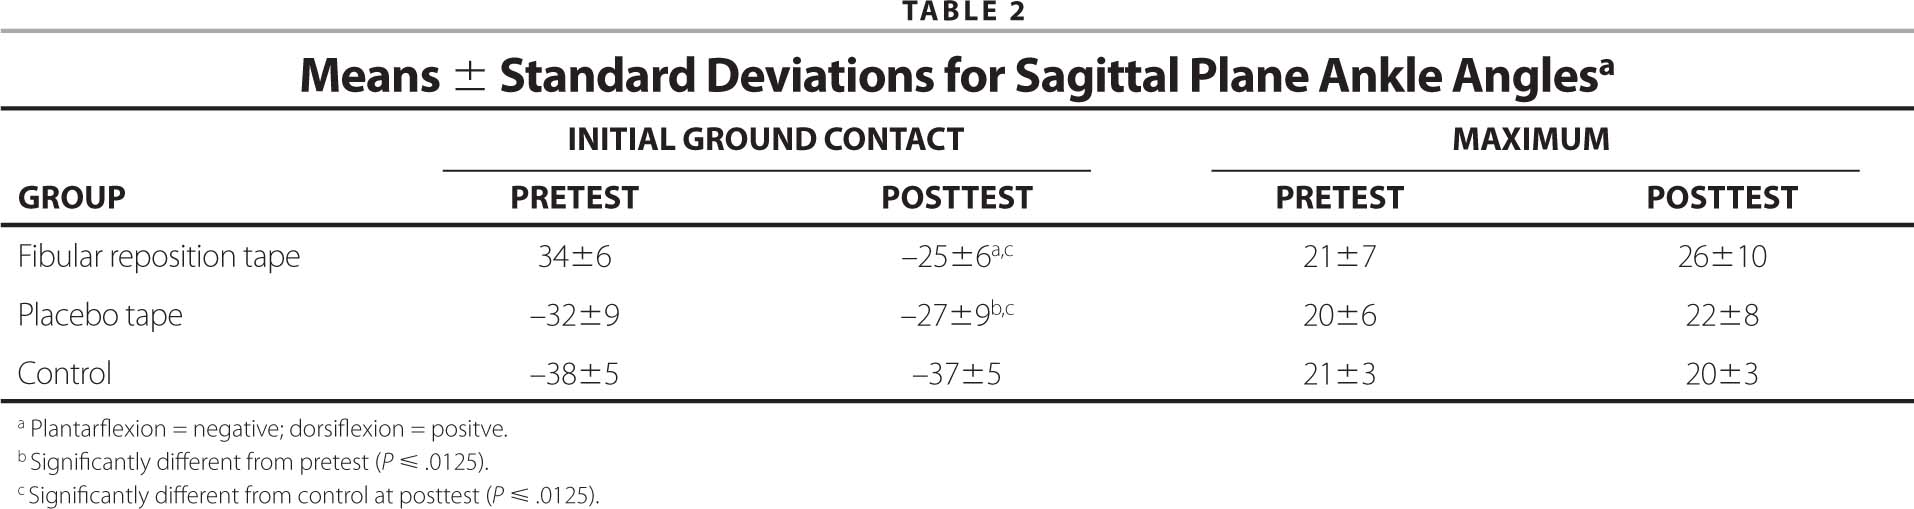 Means ± Standard Deviations for Sagittal Plane Ankle Anglesa